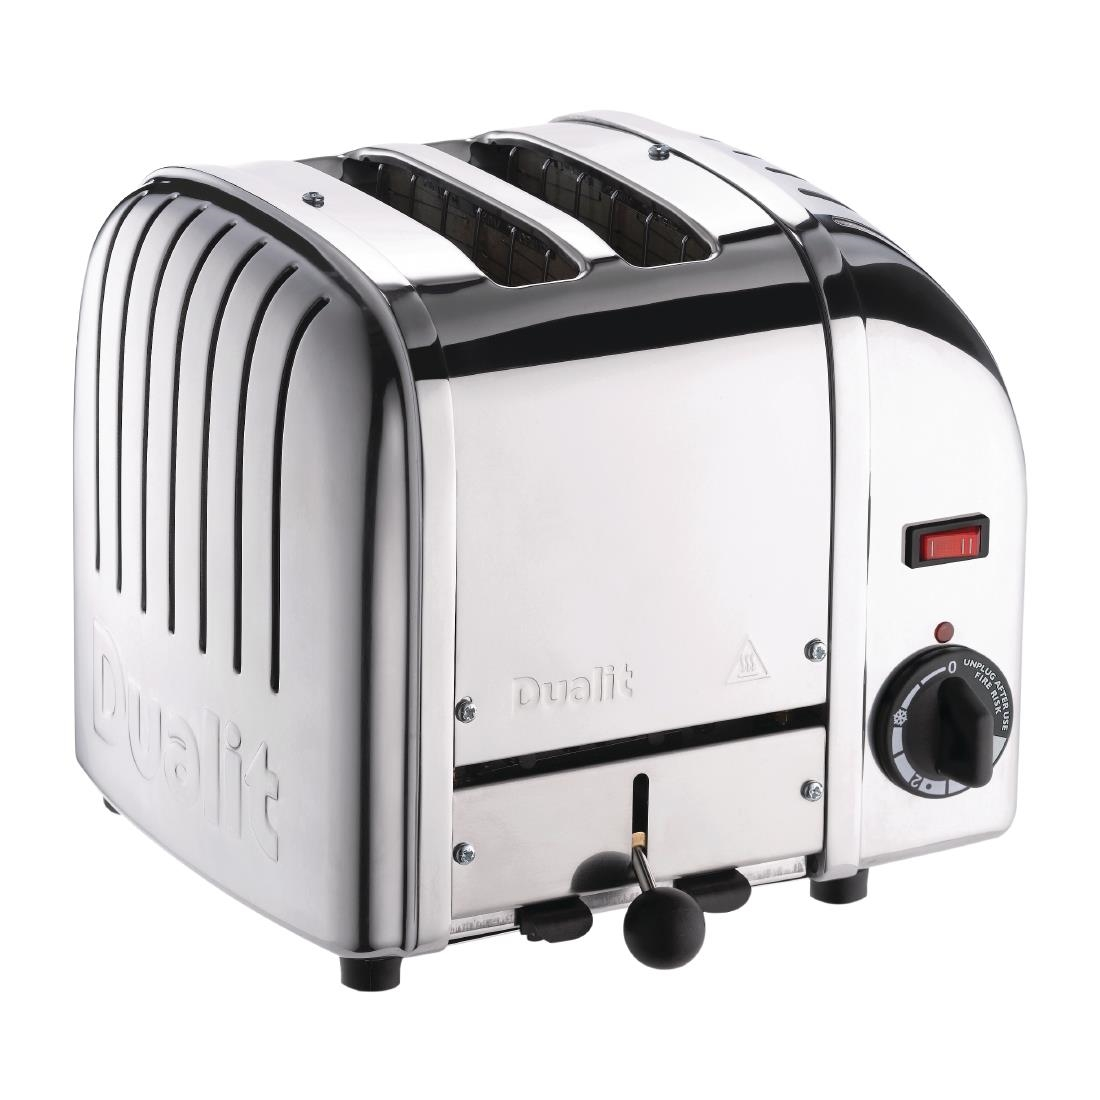 Dualit 2 Slice Vario Toaster Stainless Steel F208 Buy